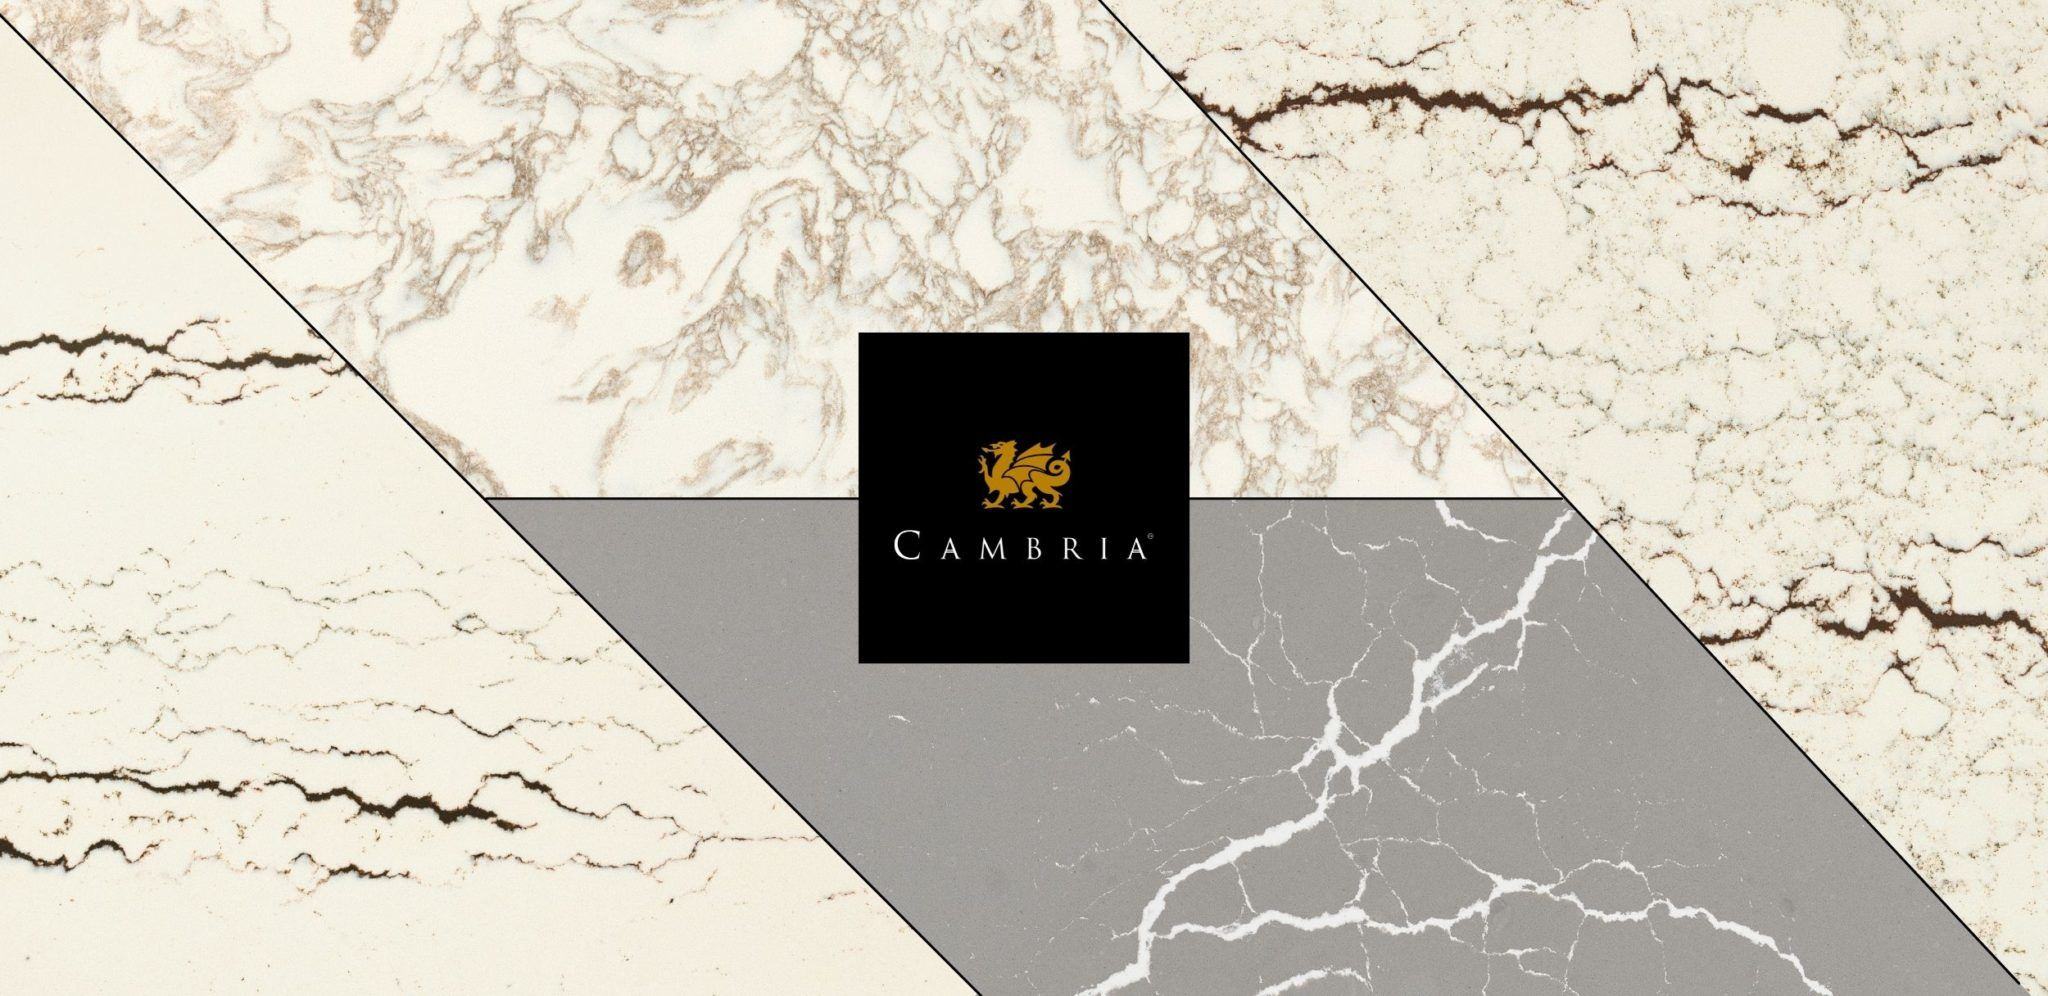 Introducing Cambria's for new colors